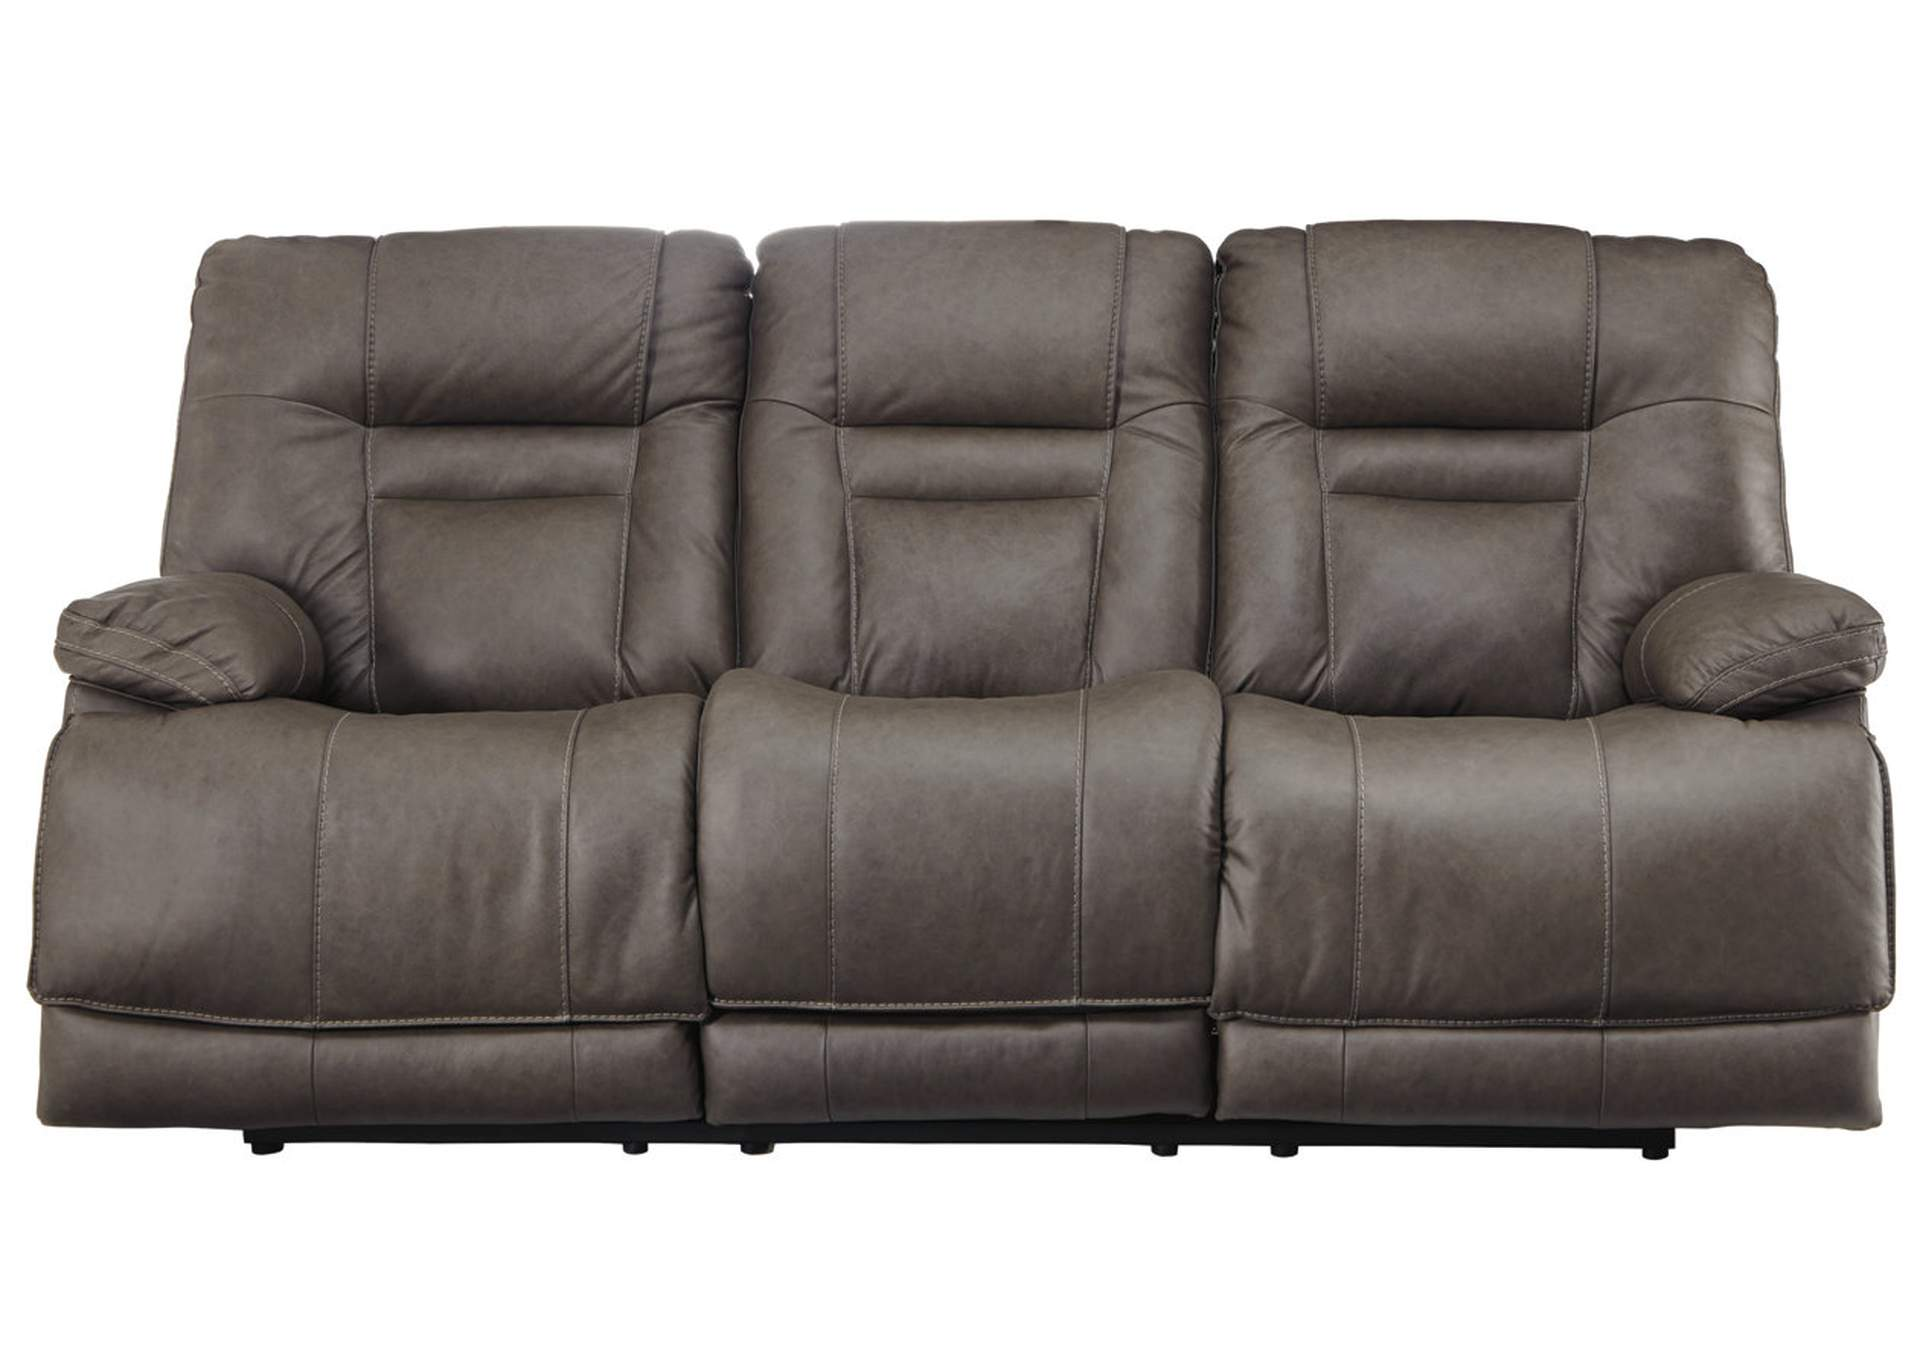 Wurstrow Smoke Power Reclining Sofa w/Adjustable Headrest,Signature Design By Ashley